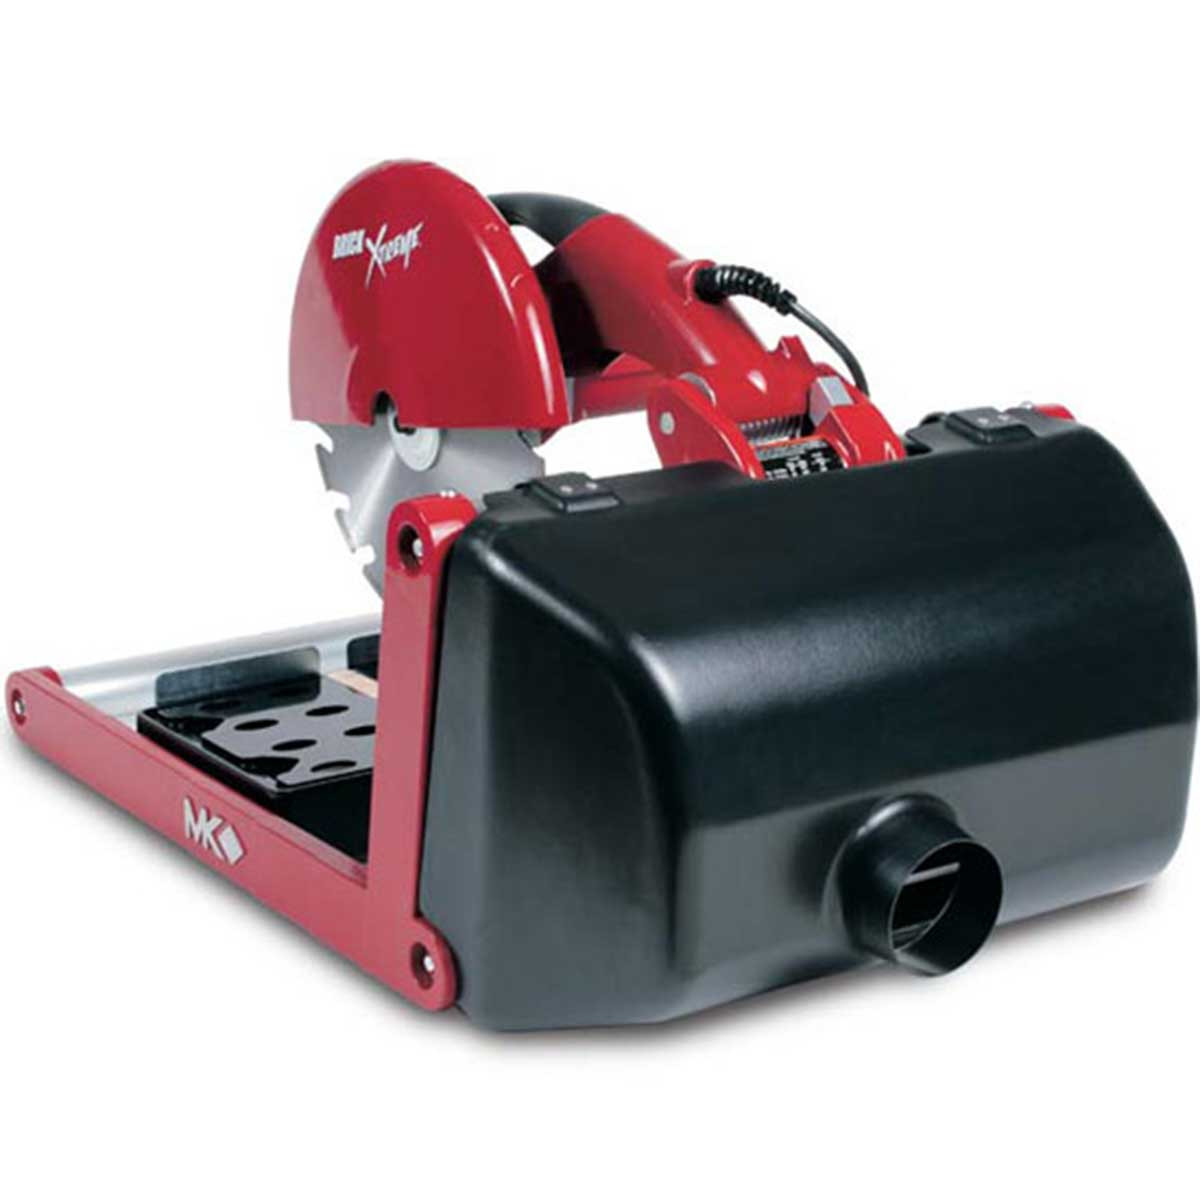 mk bx-3 optional dust collection hood